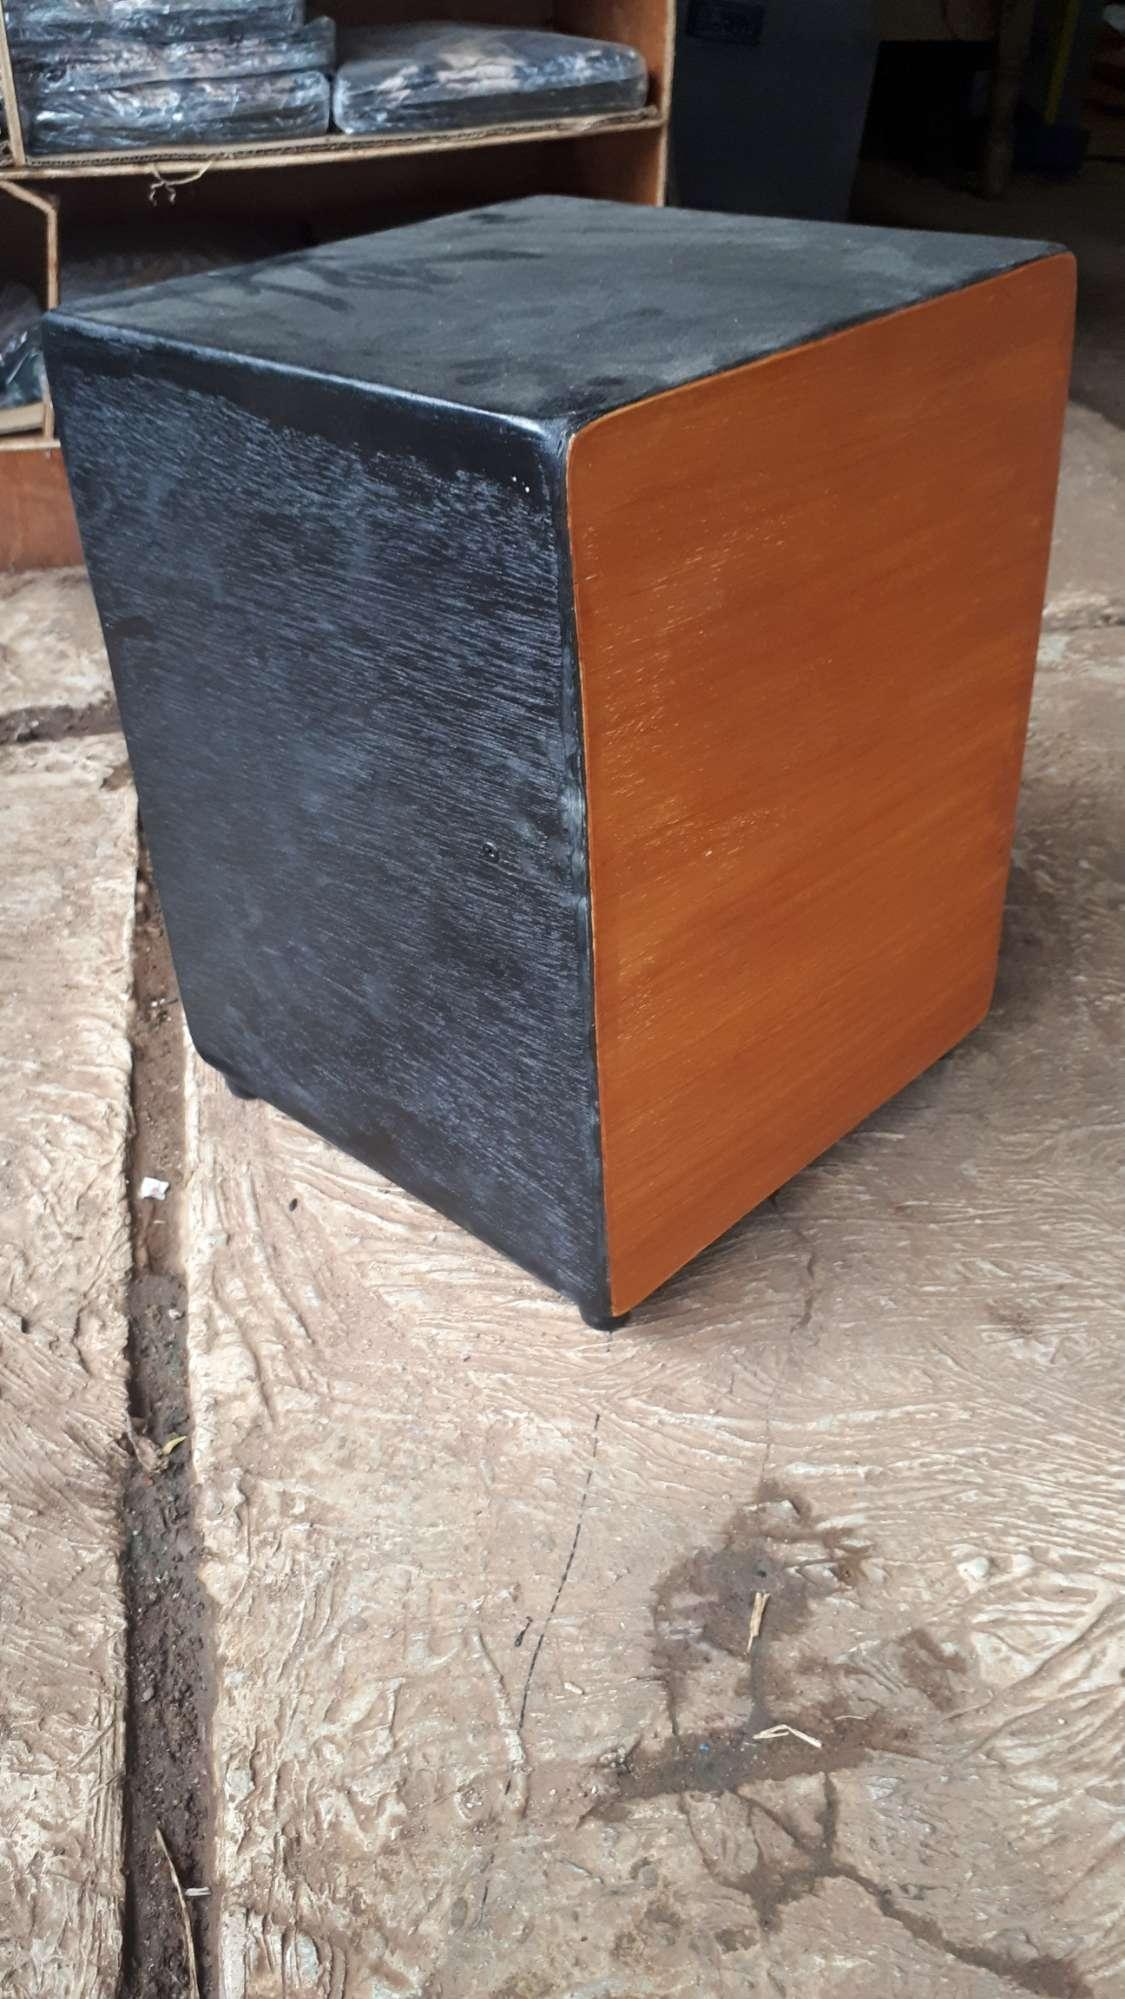 Cajon Akustik Murah New Box By Alfarizimart.